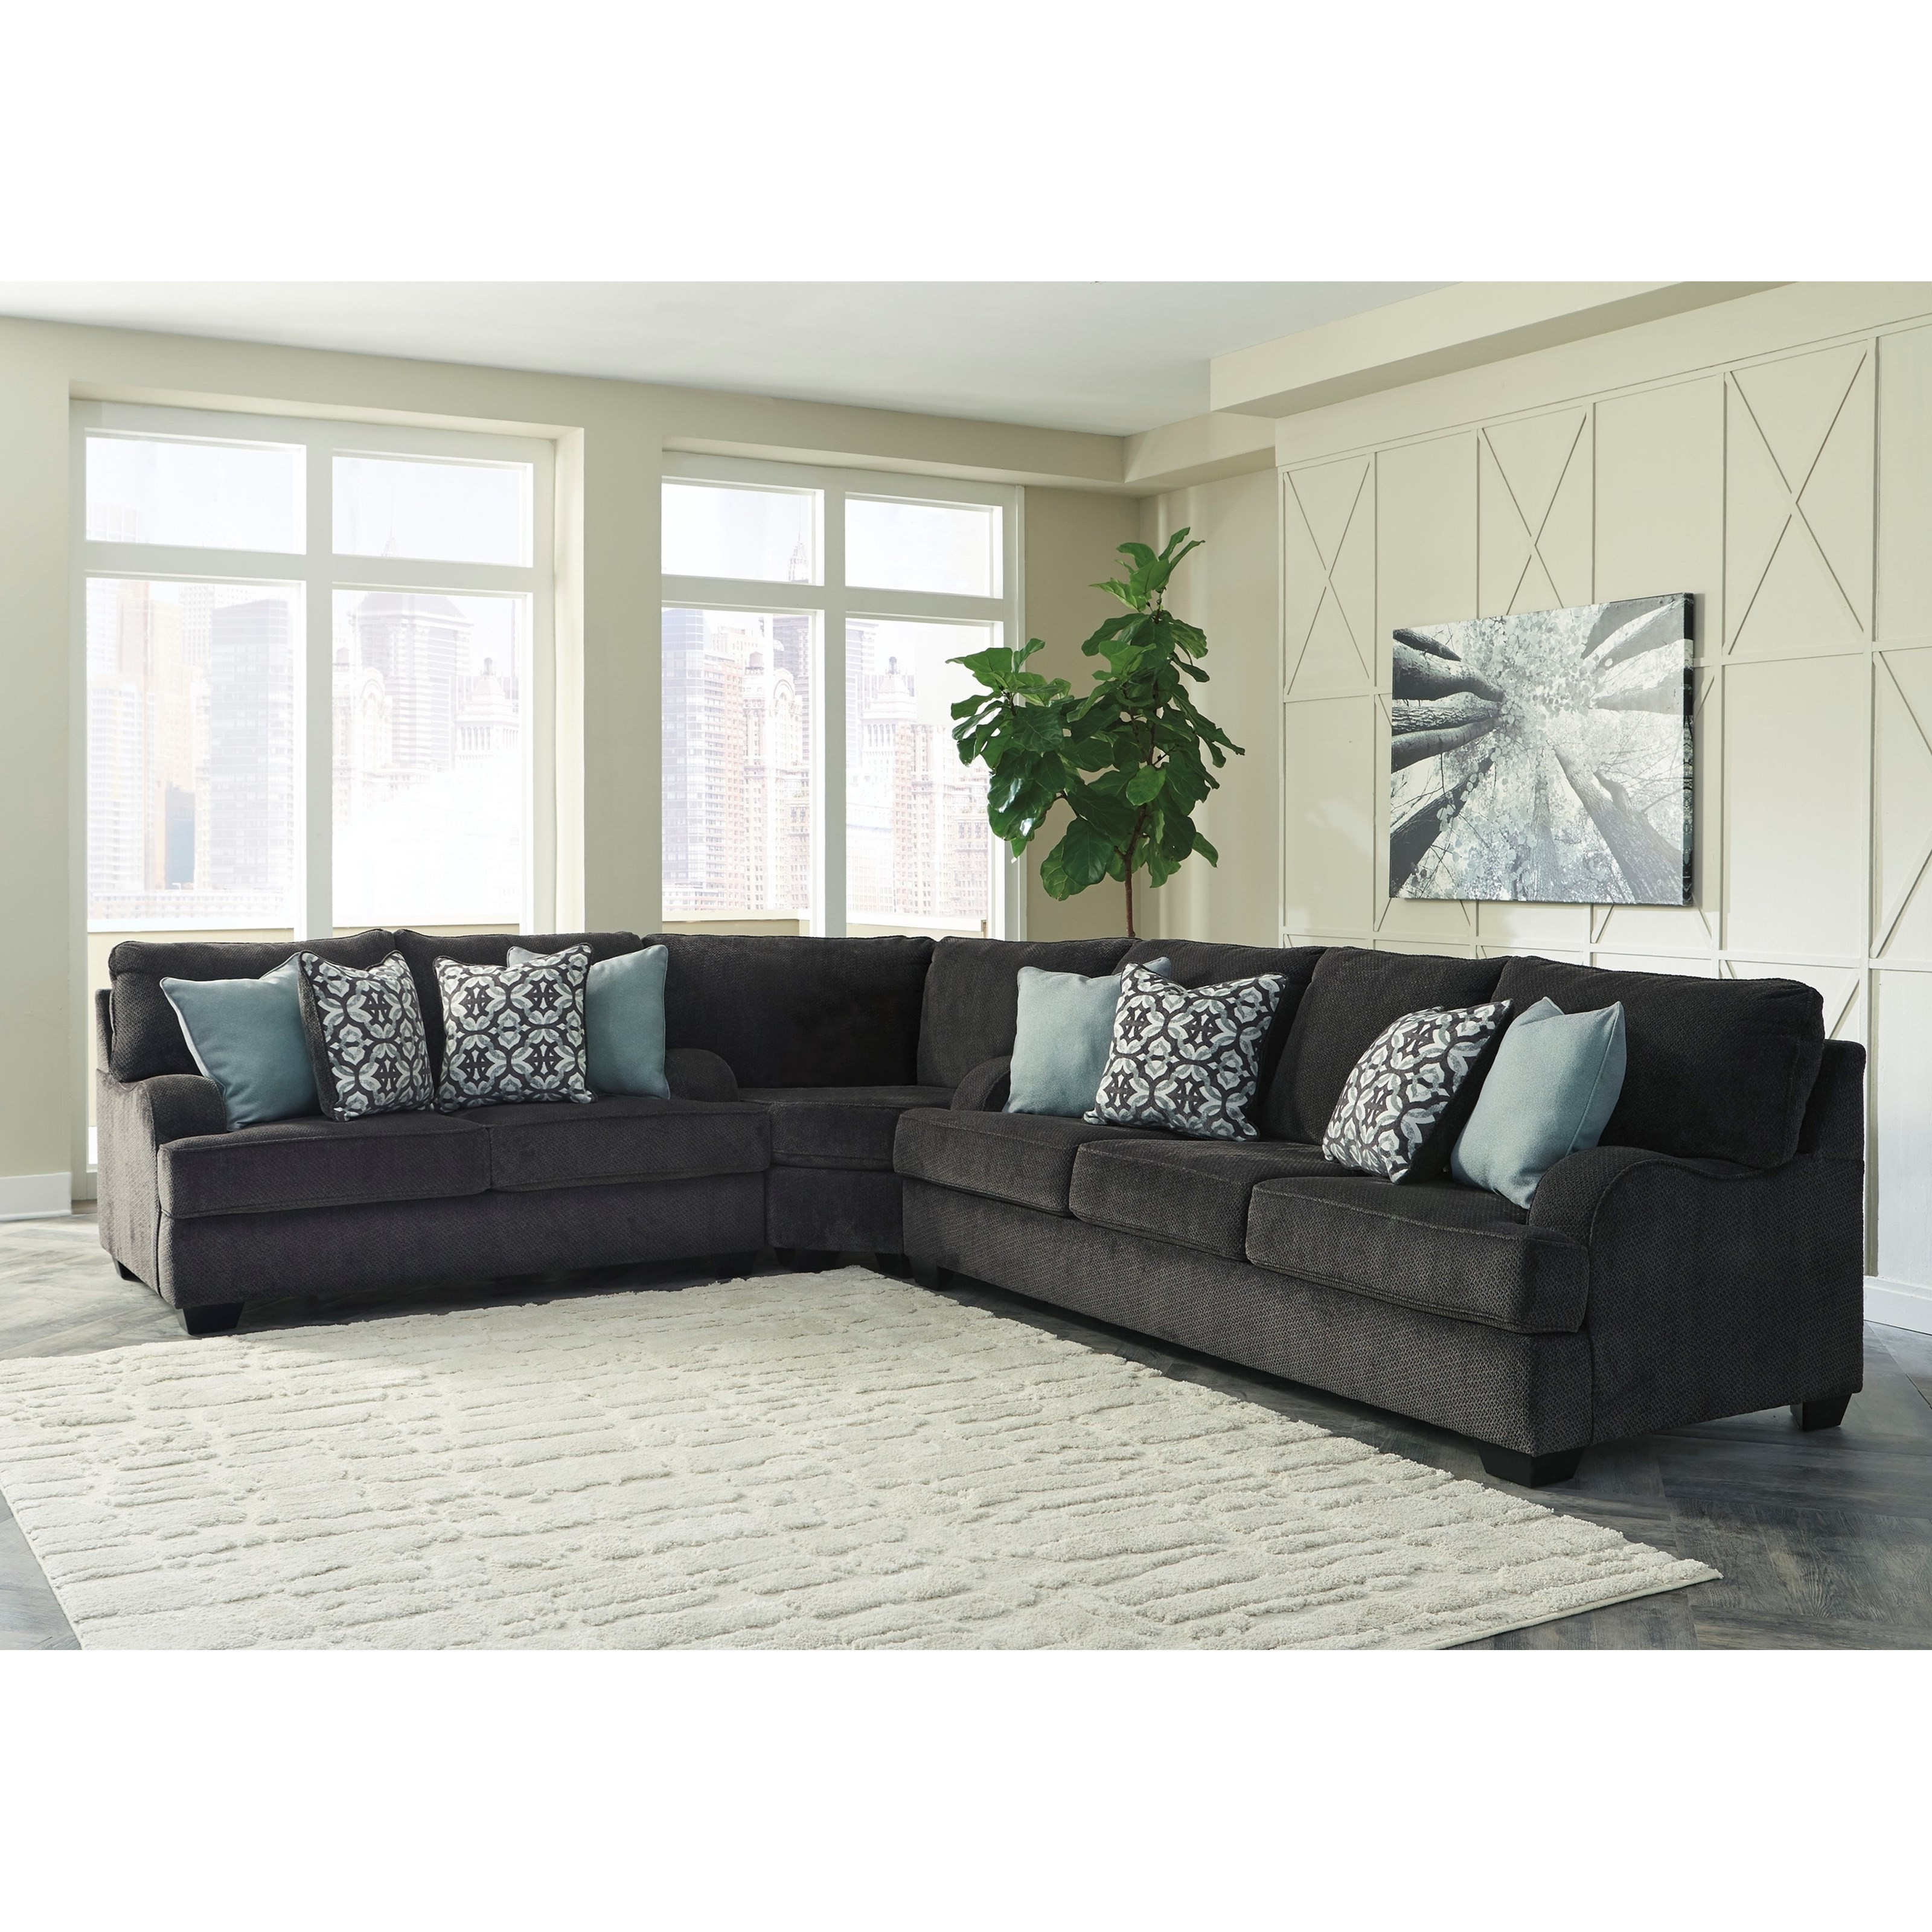 Favorite Luxury Splitting Up A Sectional Sofa Hiding Unfinished Side Throughout Jackson Ms Sectional Sofas (View 6 of 20)